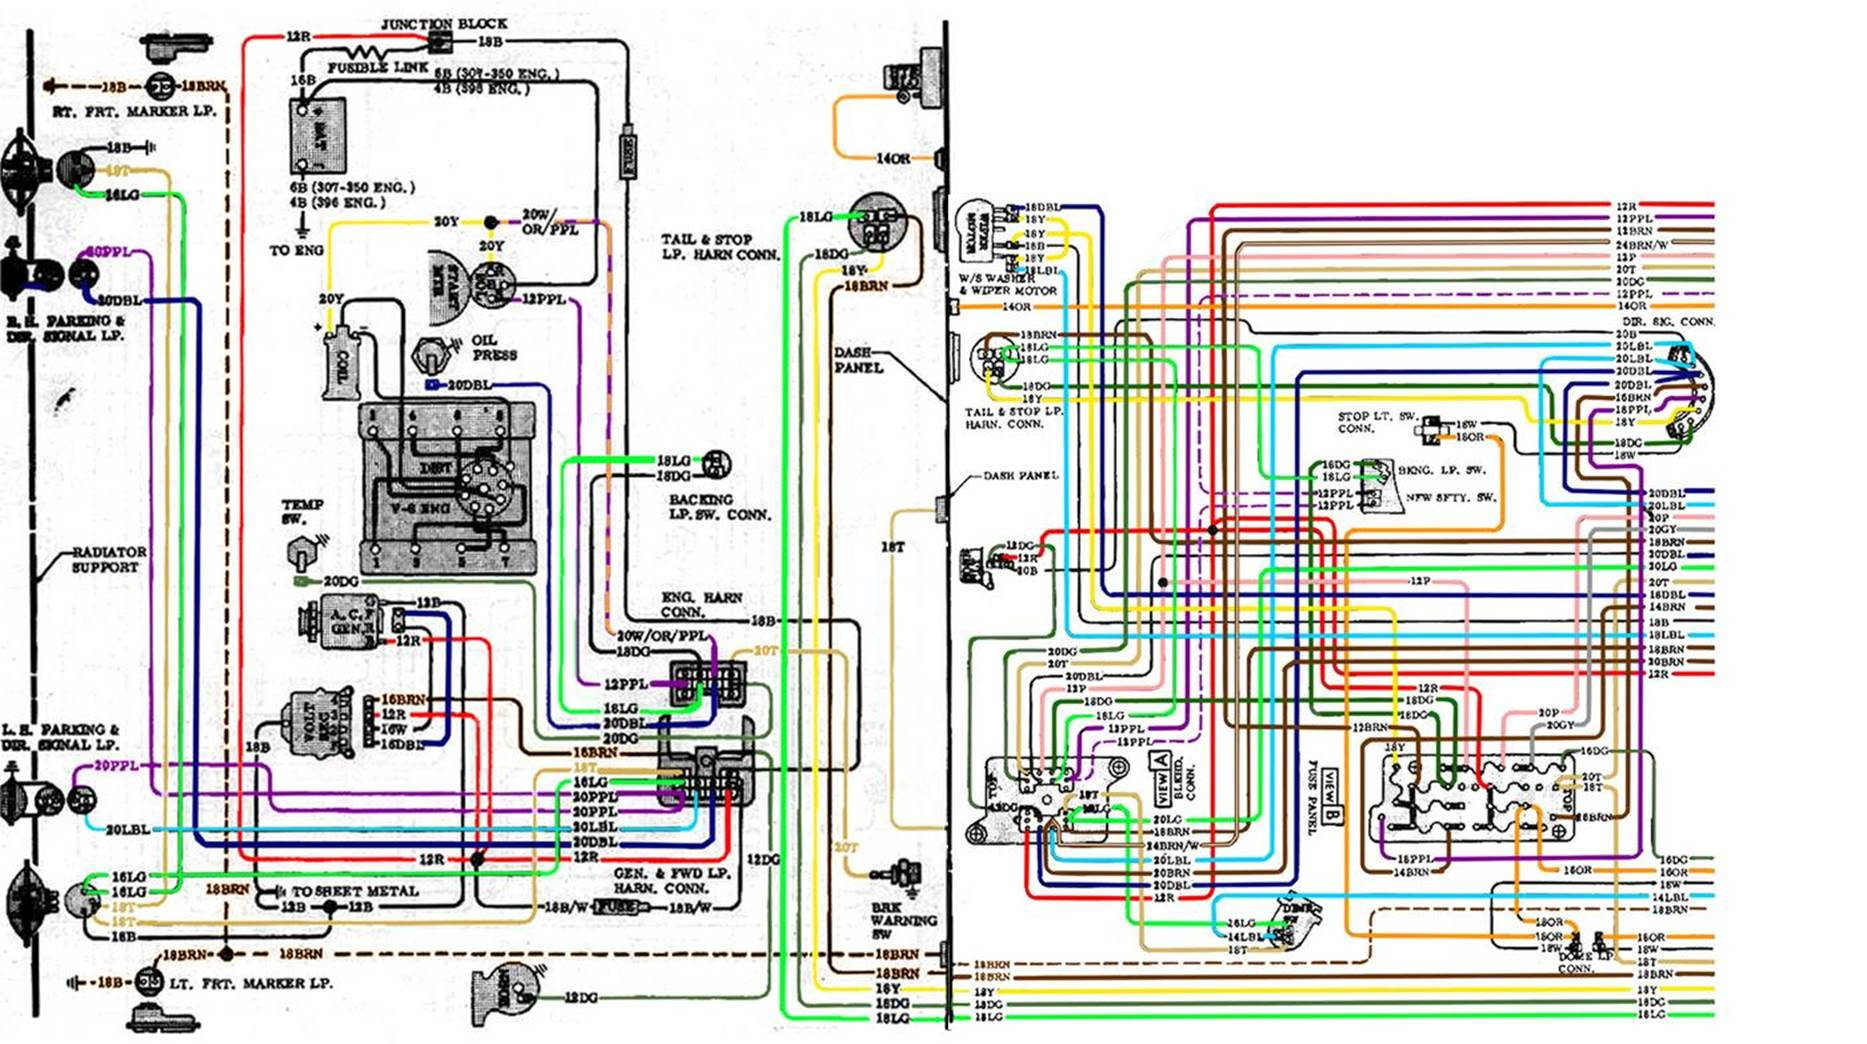 image002 67 72 chevy wiring diagram 72 nova wiring diagram at bakdesigns.co